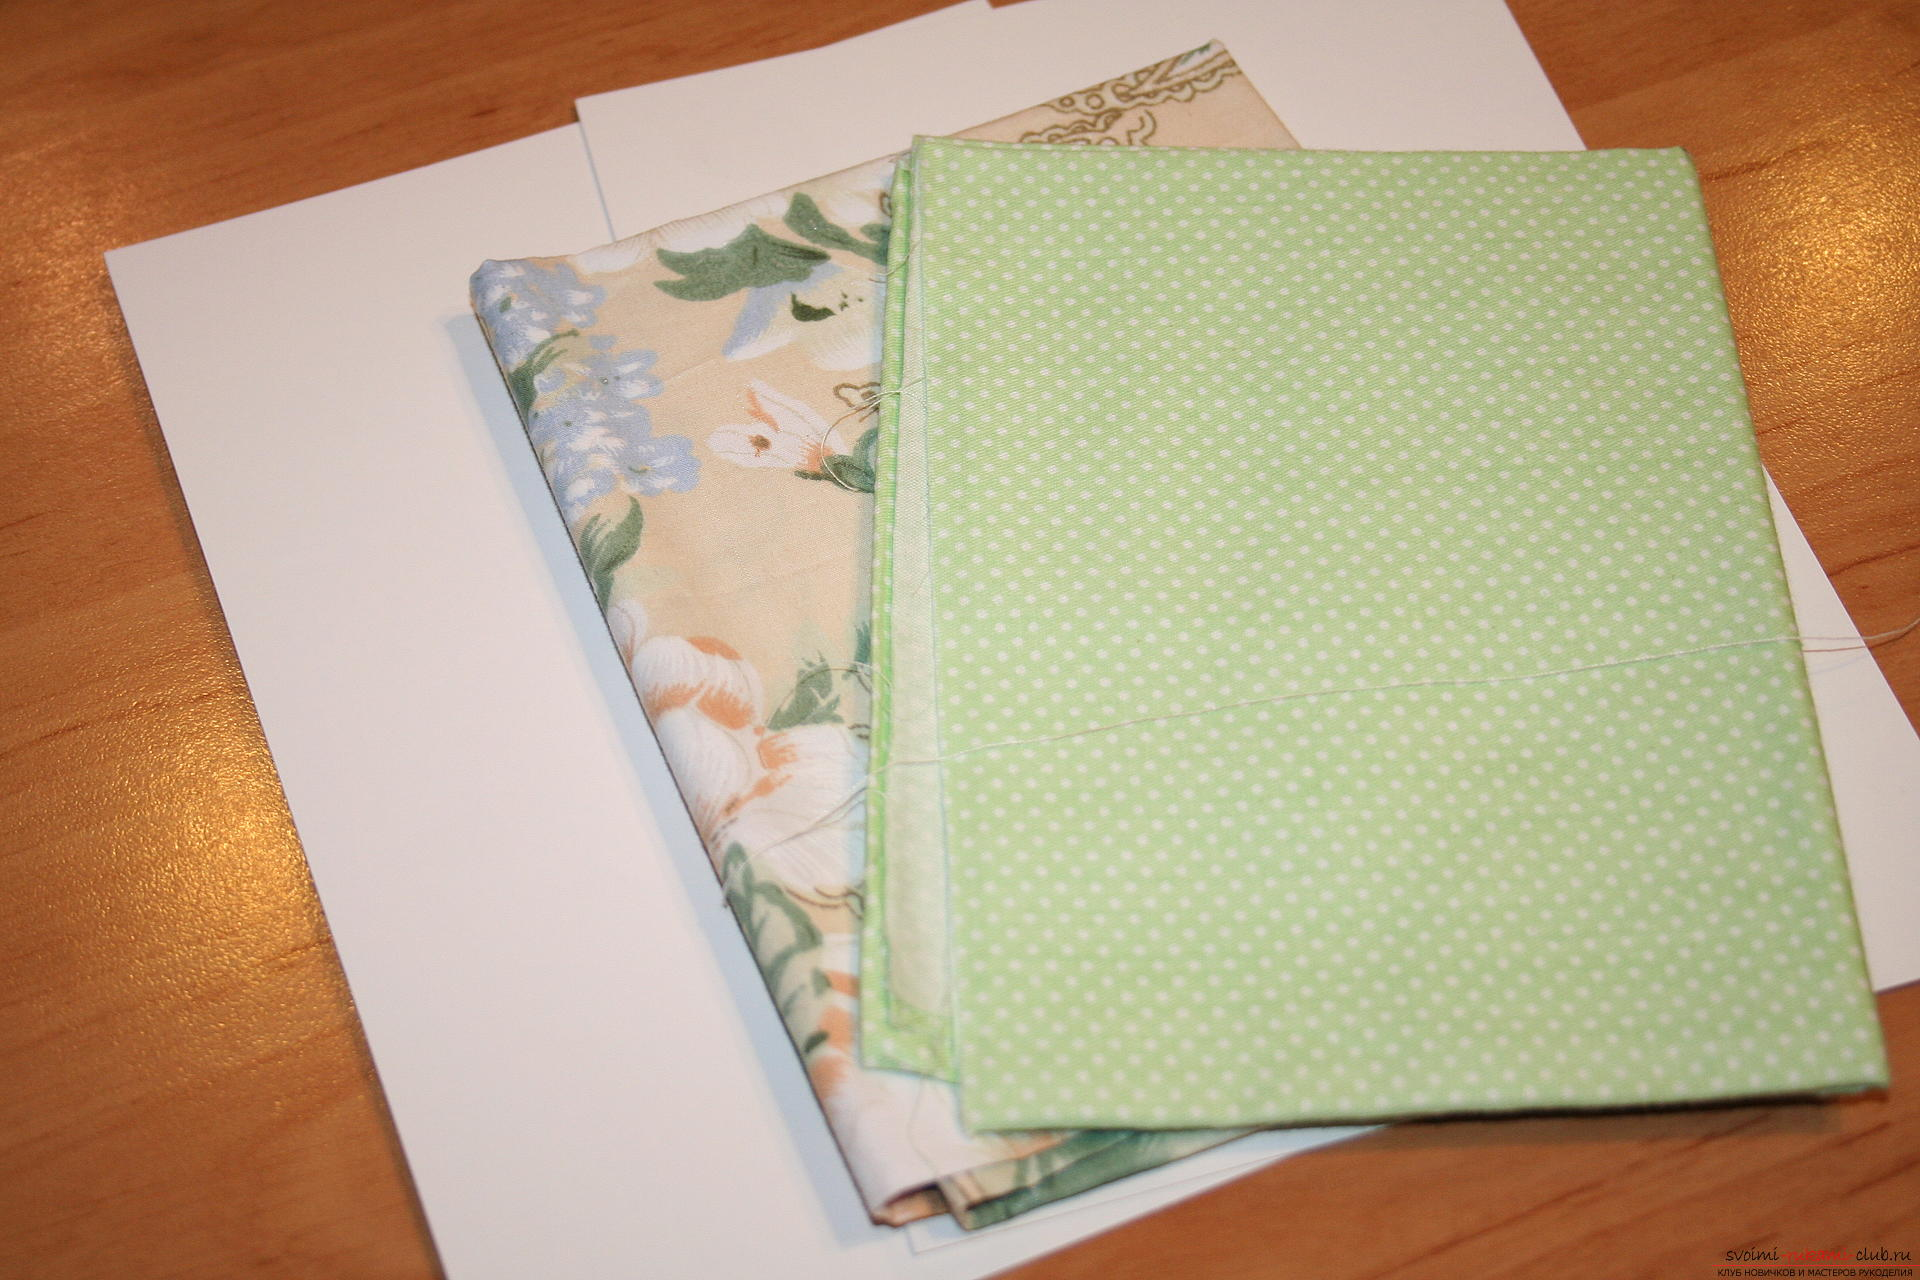 This master class will teach you how to create a notebook using scrapbooking techniques. Photo # 2